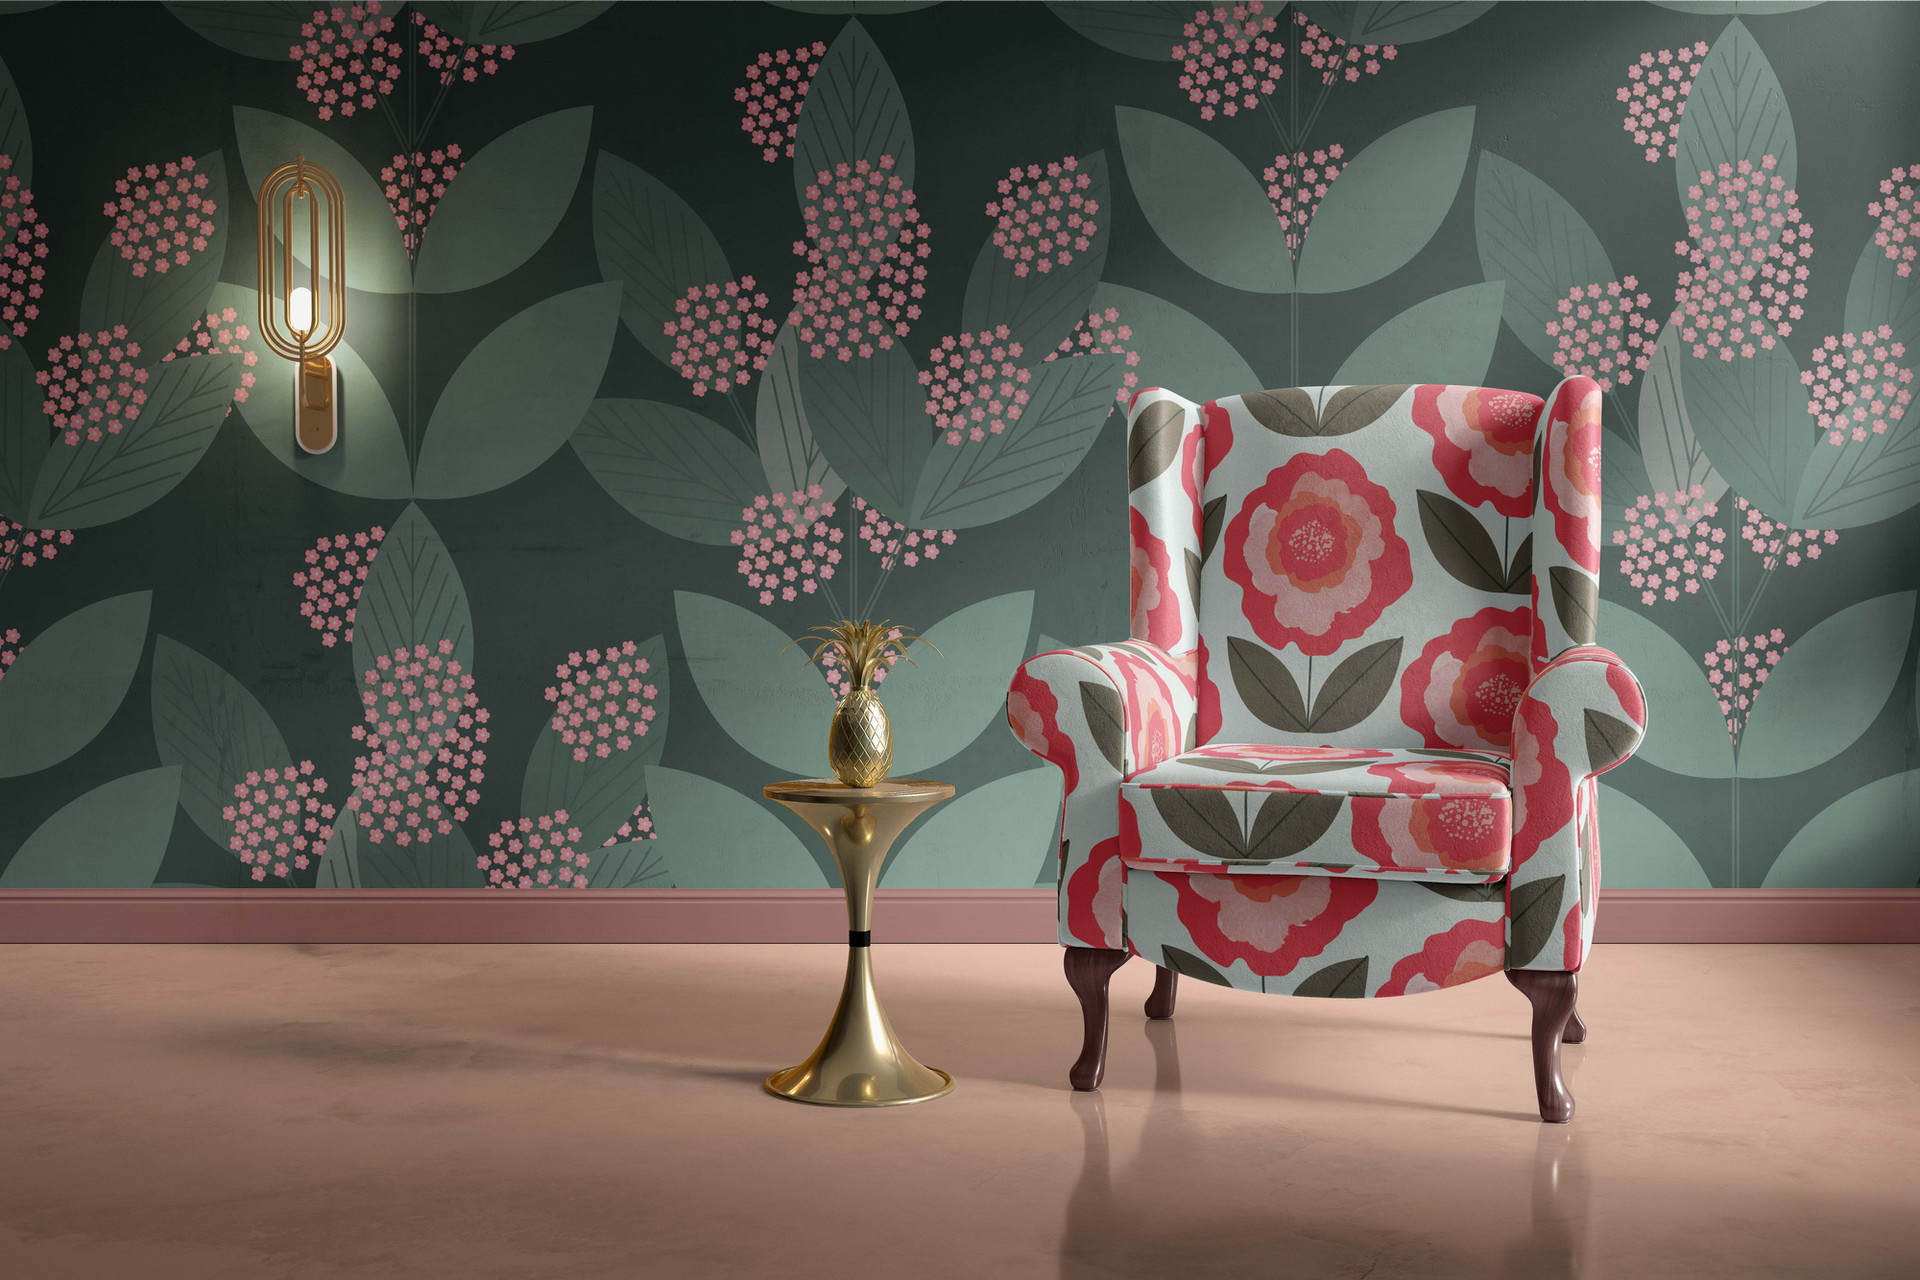 The Flower Puff Upholstery and Wallpaper